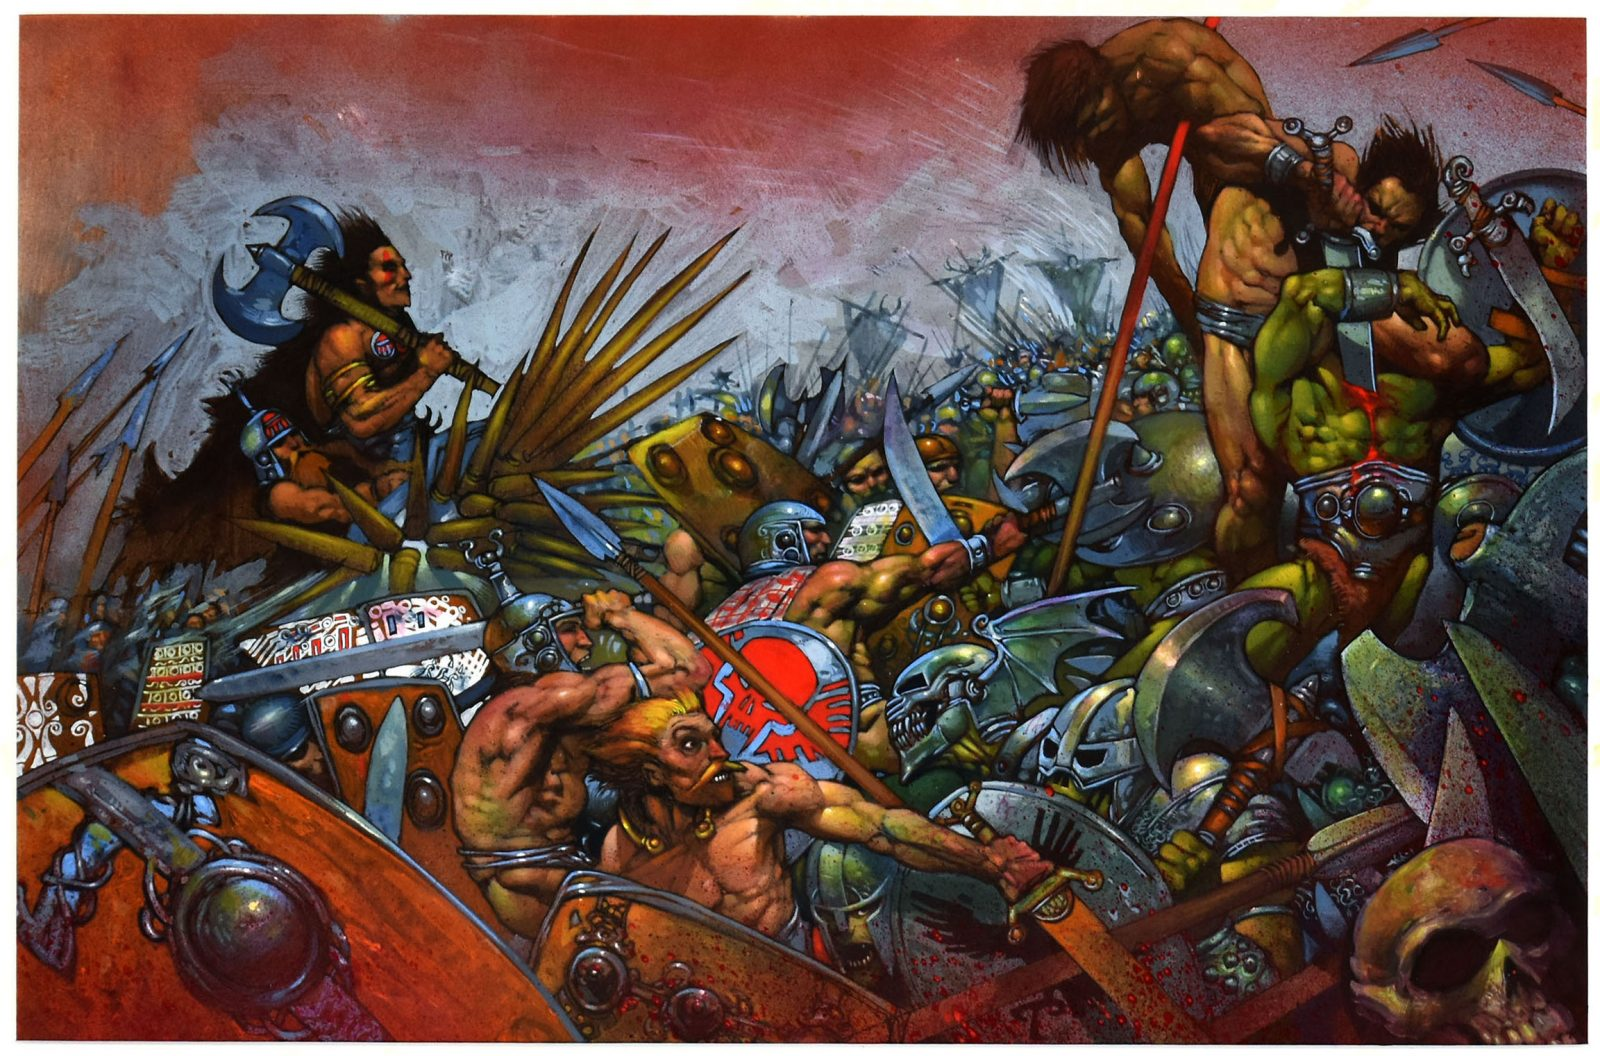 Simon Bisley illustrated this sensational Slaine illustration in mixed media on heavy illustration paper. This colourful example of Bisley's work features a highly detailed medieval battle scene. This large piece looks amazing in person.